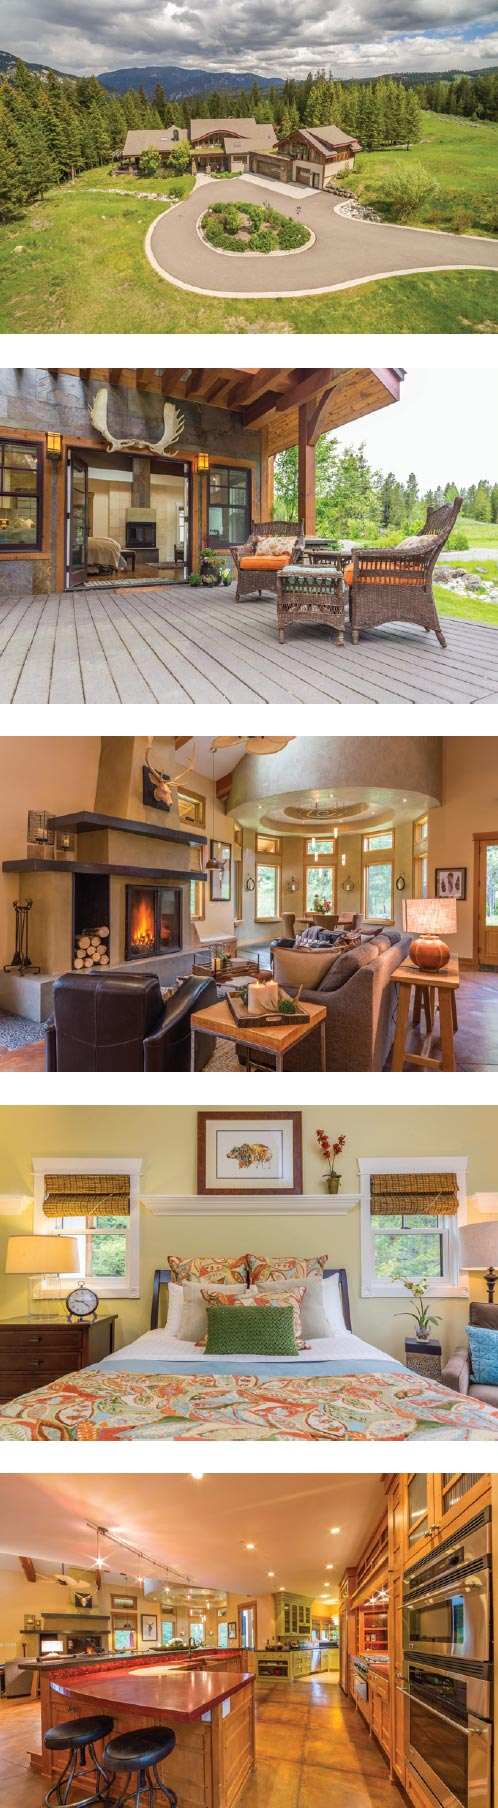 Real Estate Round Table- Bozeman-Big Sky Home Photos